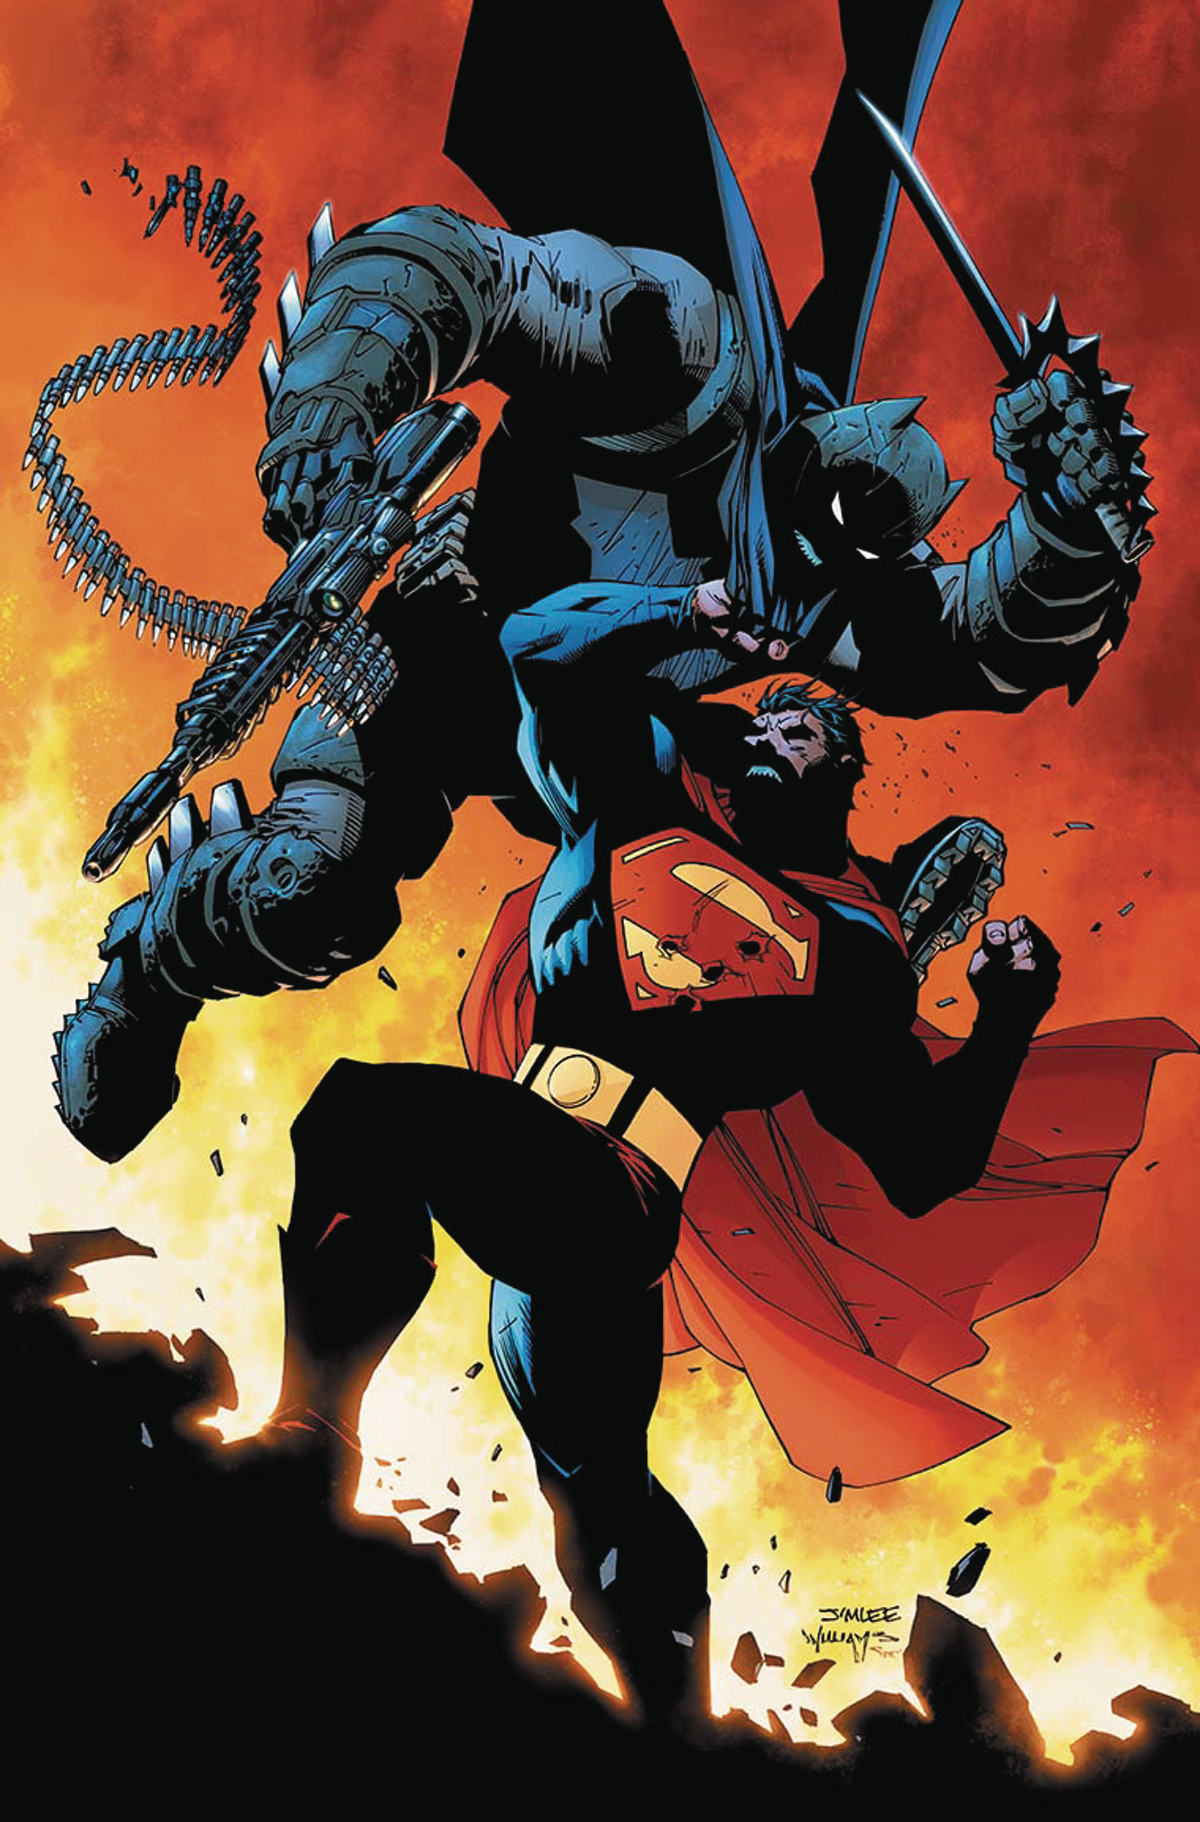 batman and superman fighting each other.jpg